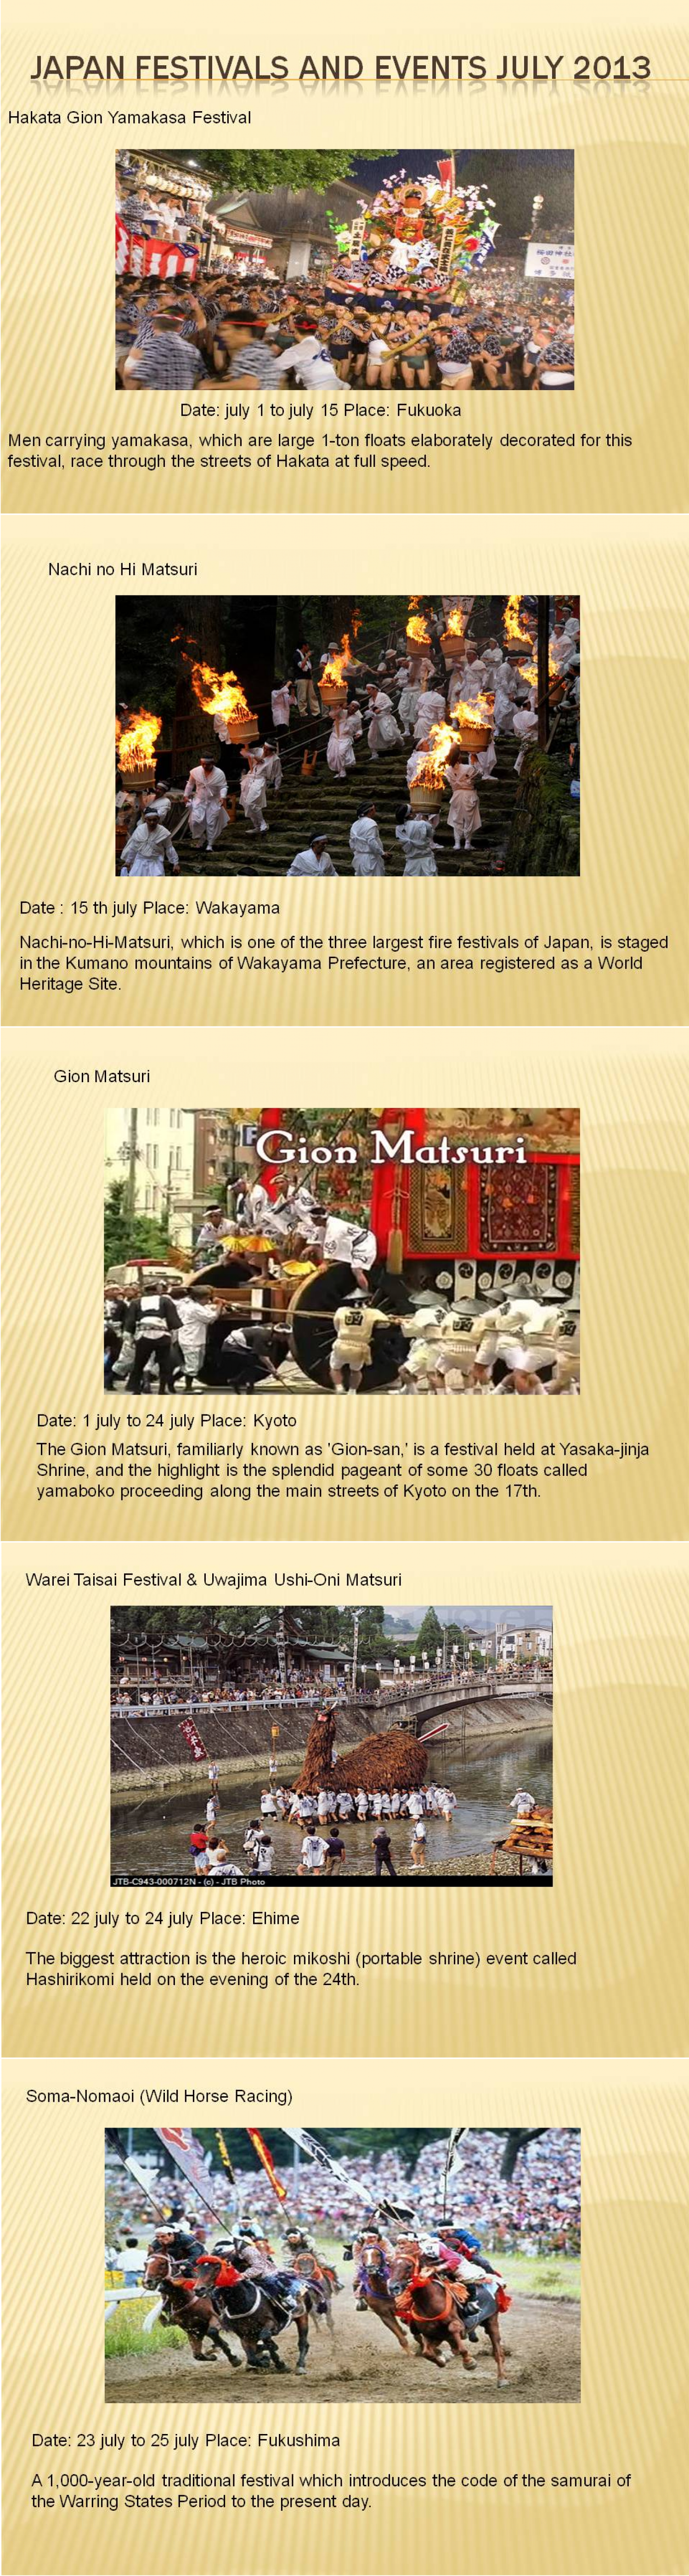 Japan festivals and events july 2013 Infographic